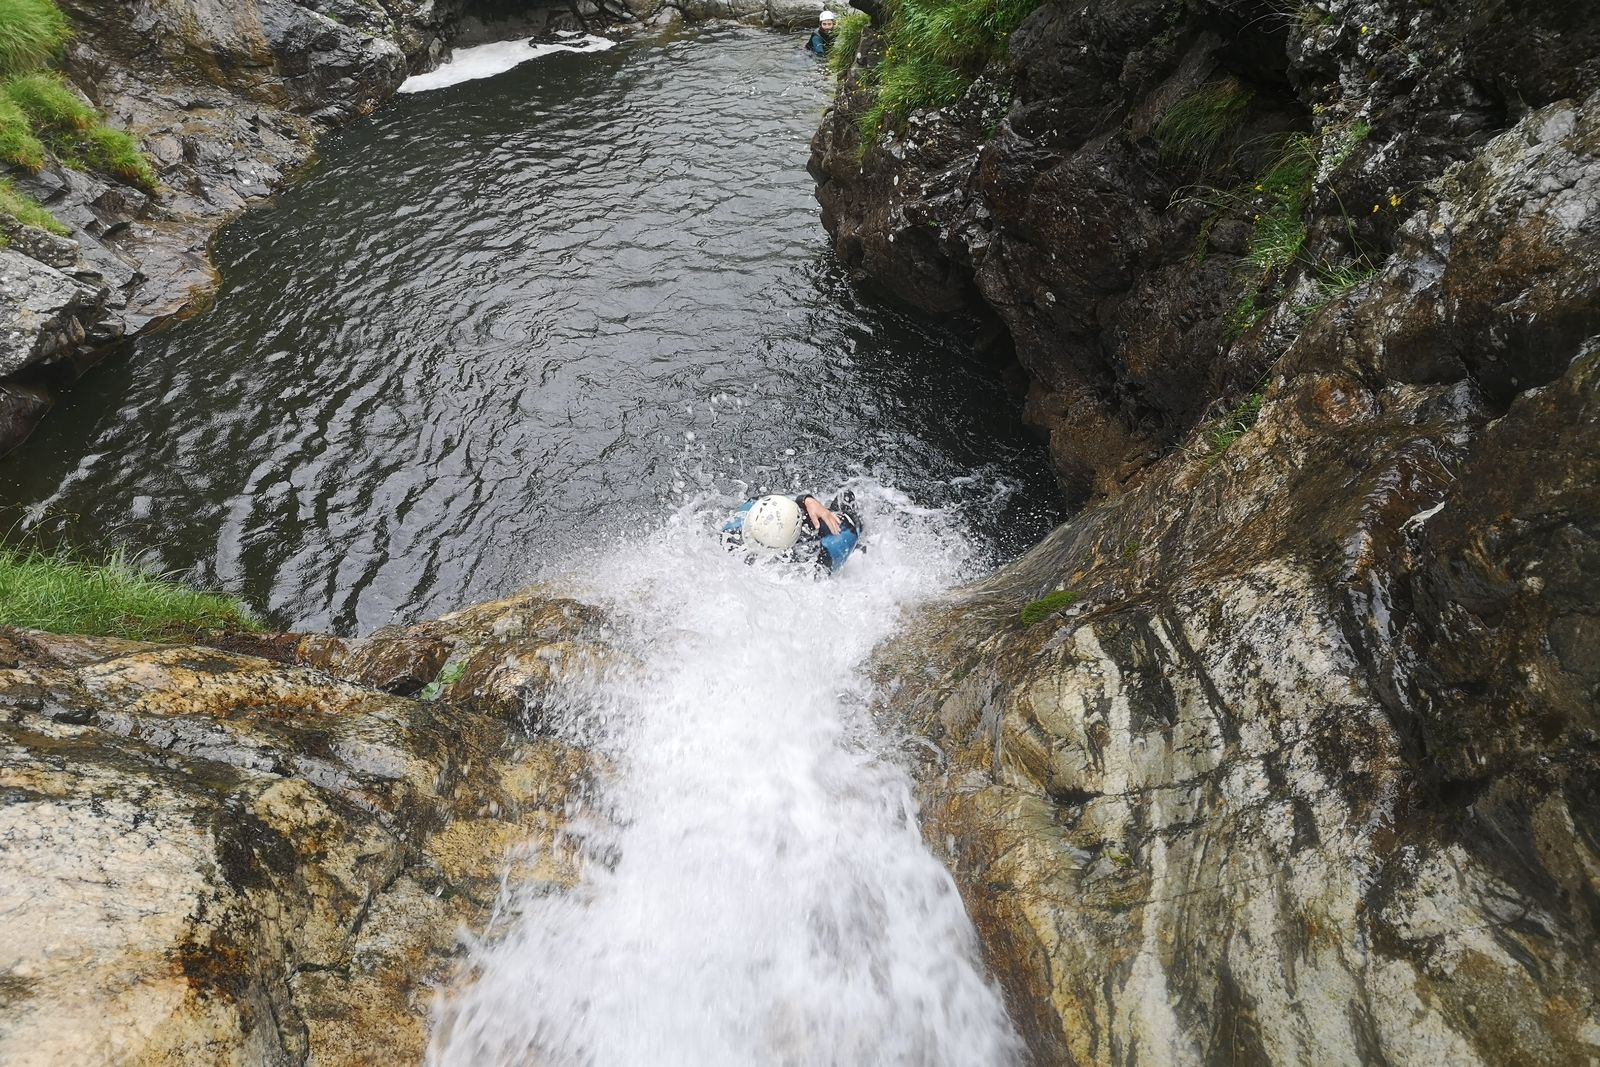 Le chouette tobogan ejectable du canyon du Maillet - canyoning Pyrenees